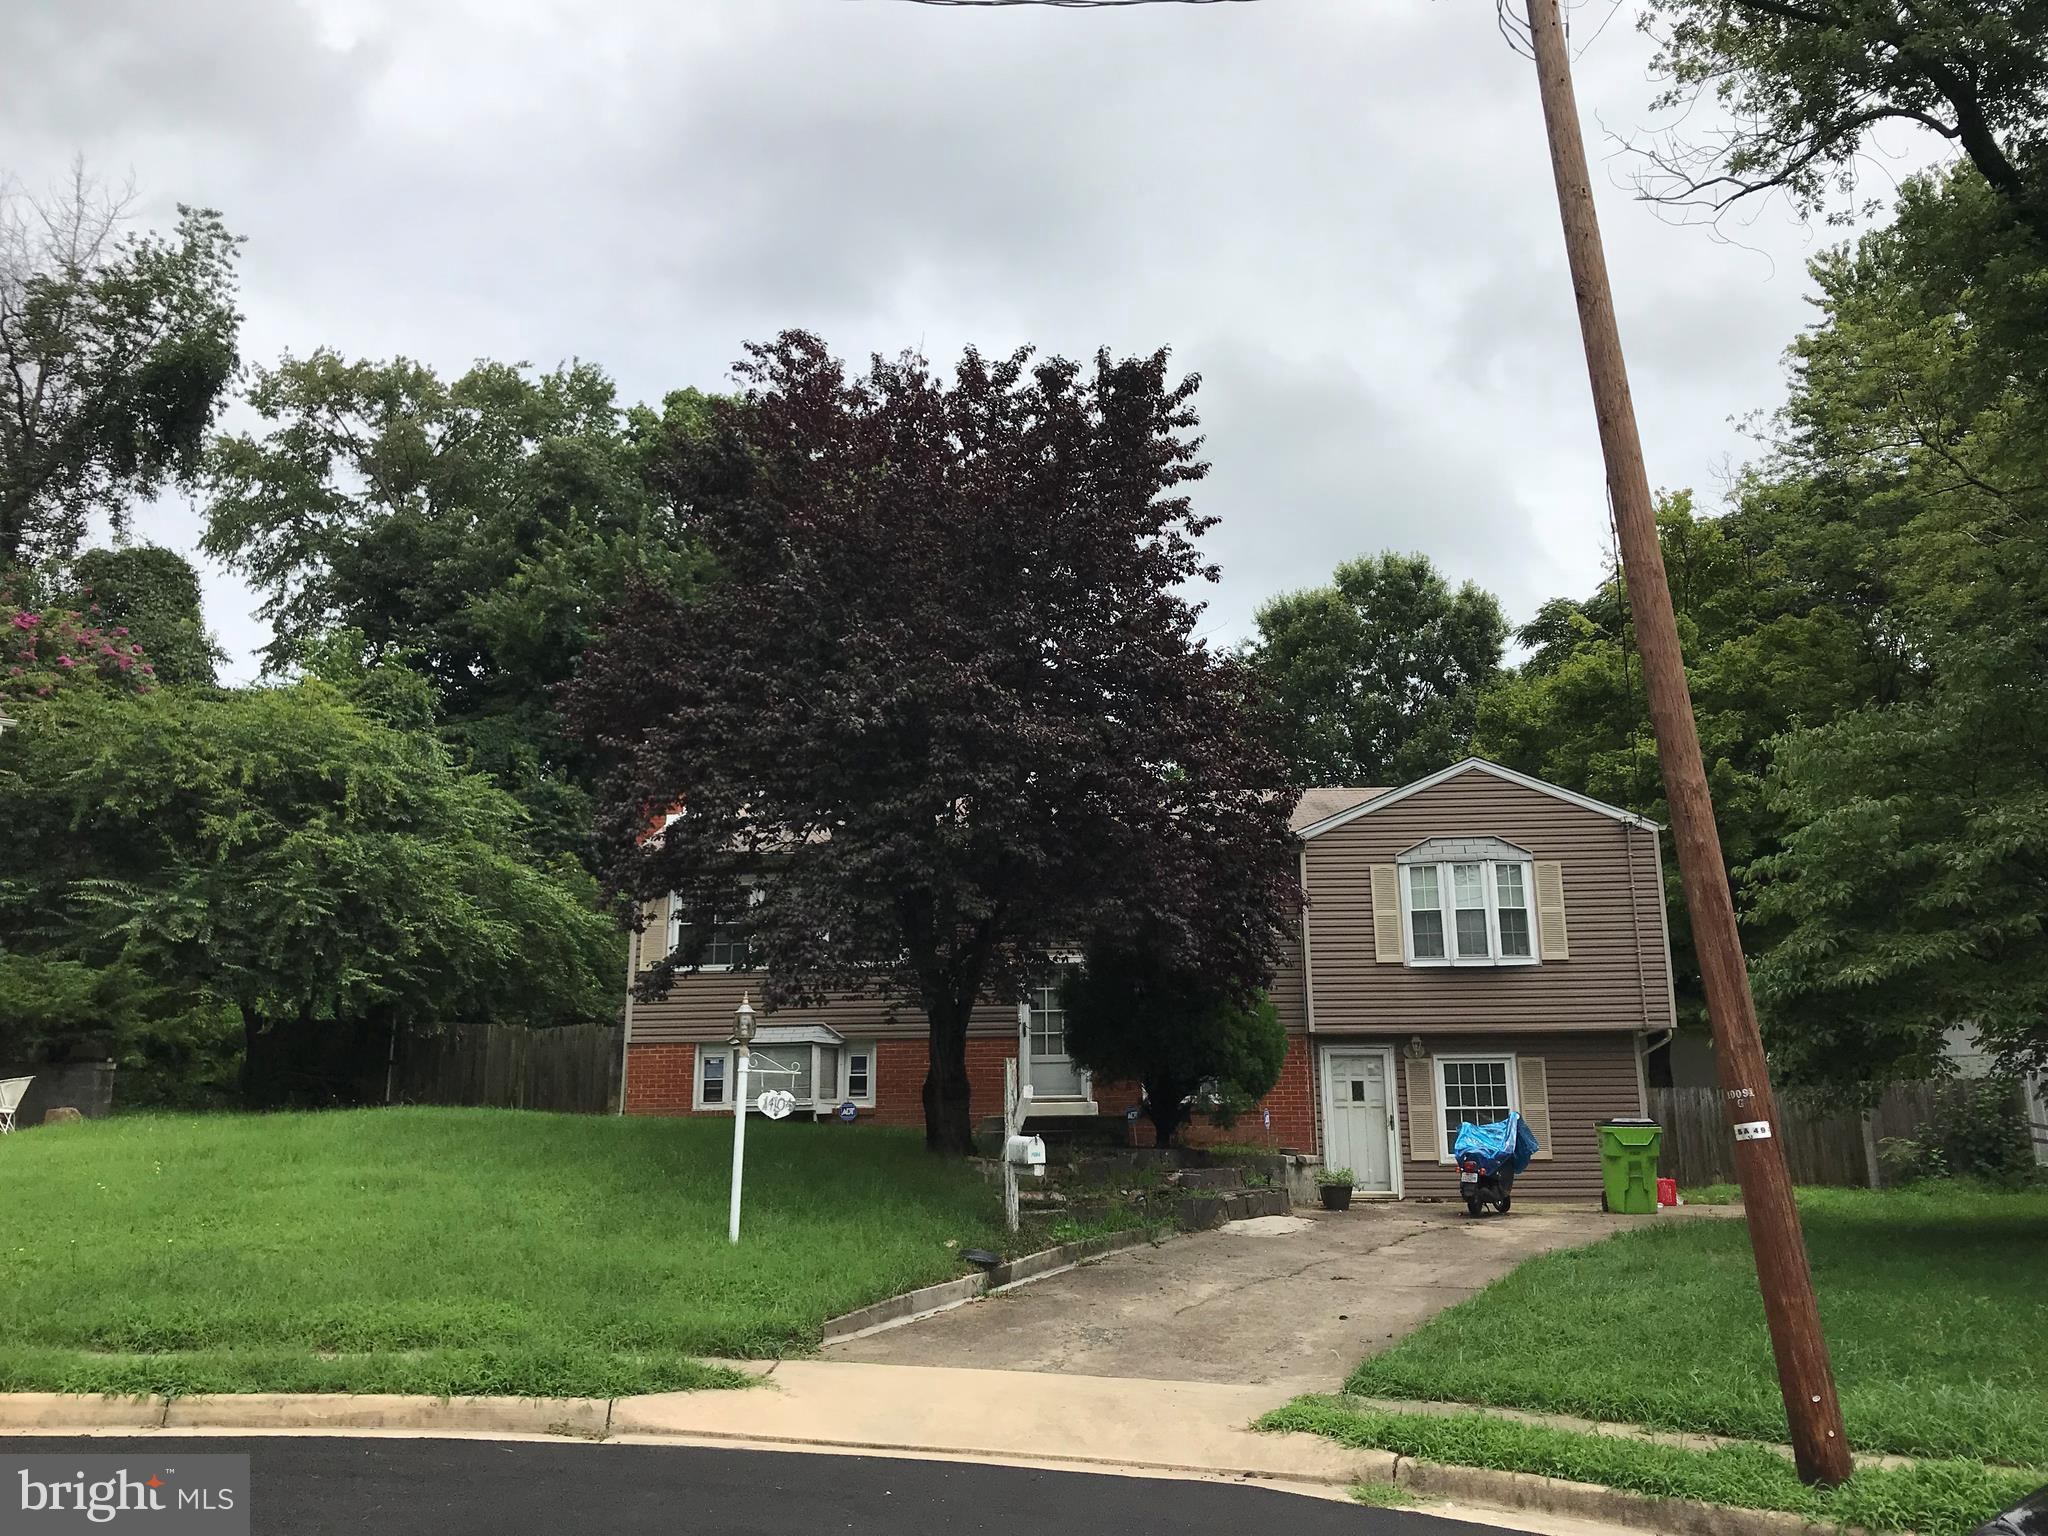 Great location. Good size home with lots of potential for the price. Make it yours with open mind. Sold AS IS. Please ask me regarding sellers name before writing an offer.